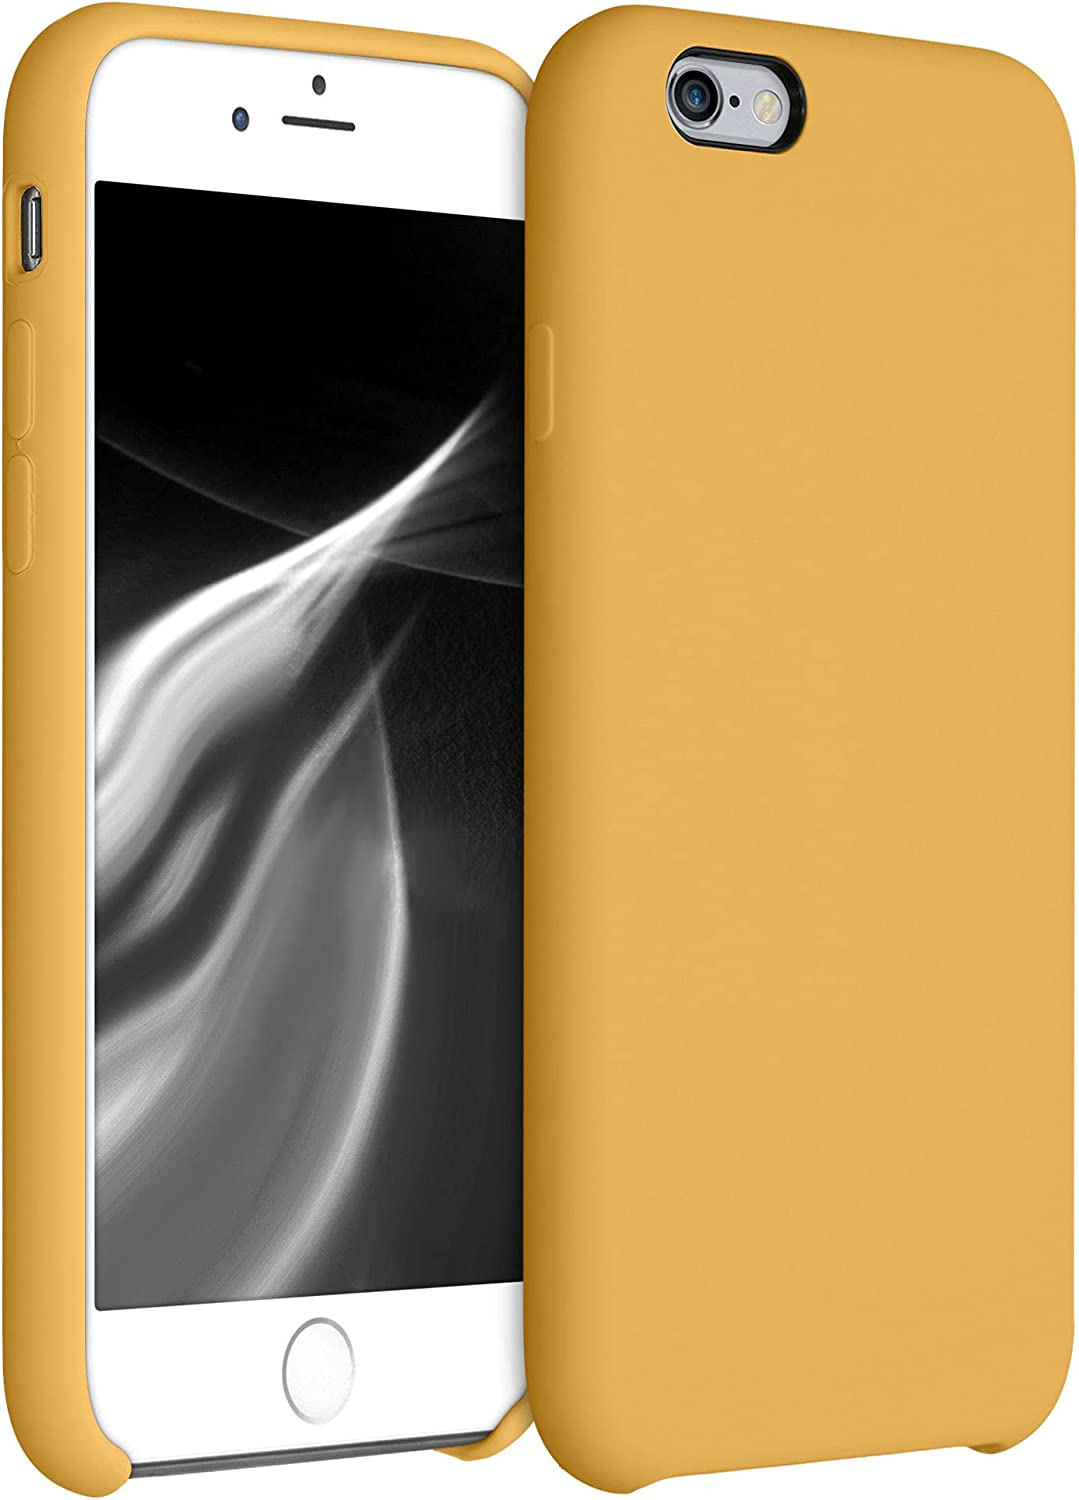 kwmobile TPU Silicone Case Compatible with Apple iPhone 6 / 6S - Case Slim Protective Phone Cover with Soft Finish - Marigold